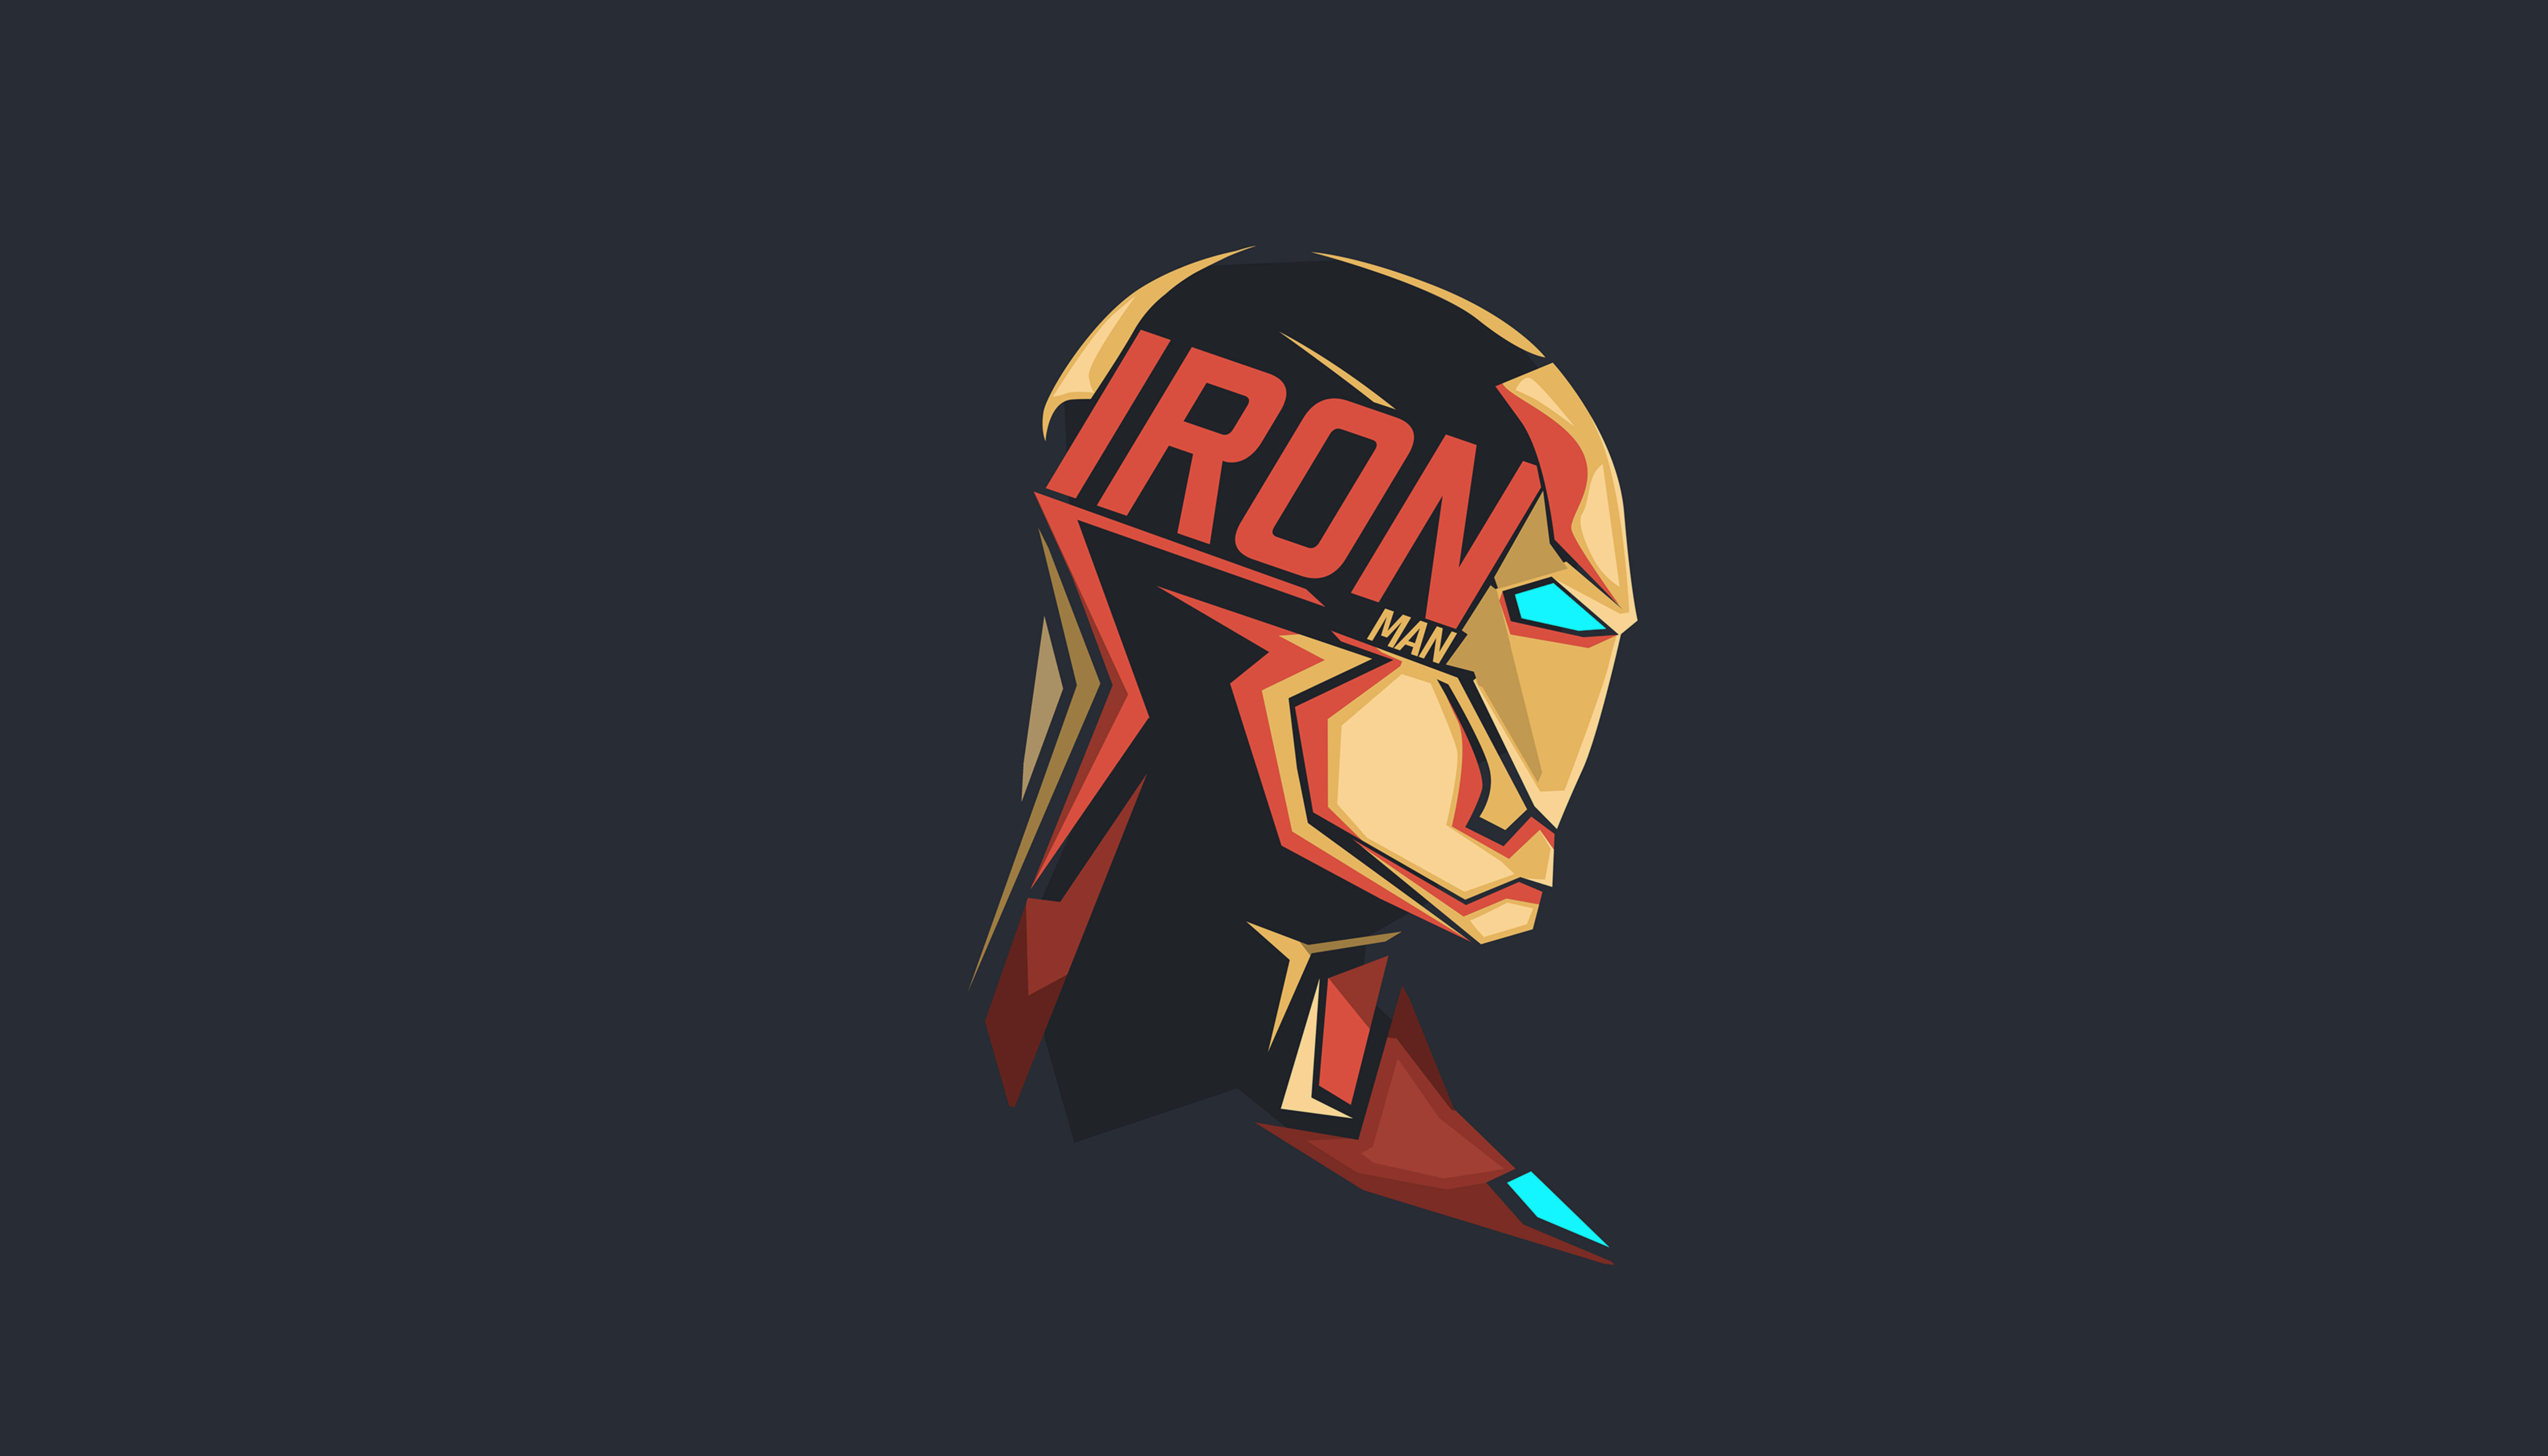 Iron Man Pop Head Minimalism 8k Hd Superheroes 4k Wallpapers